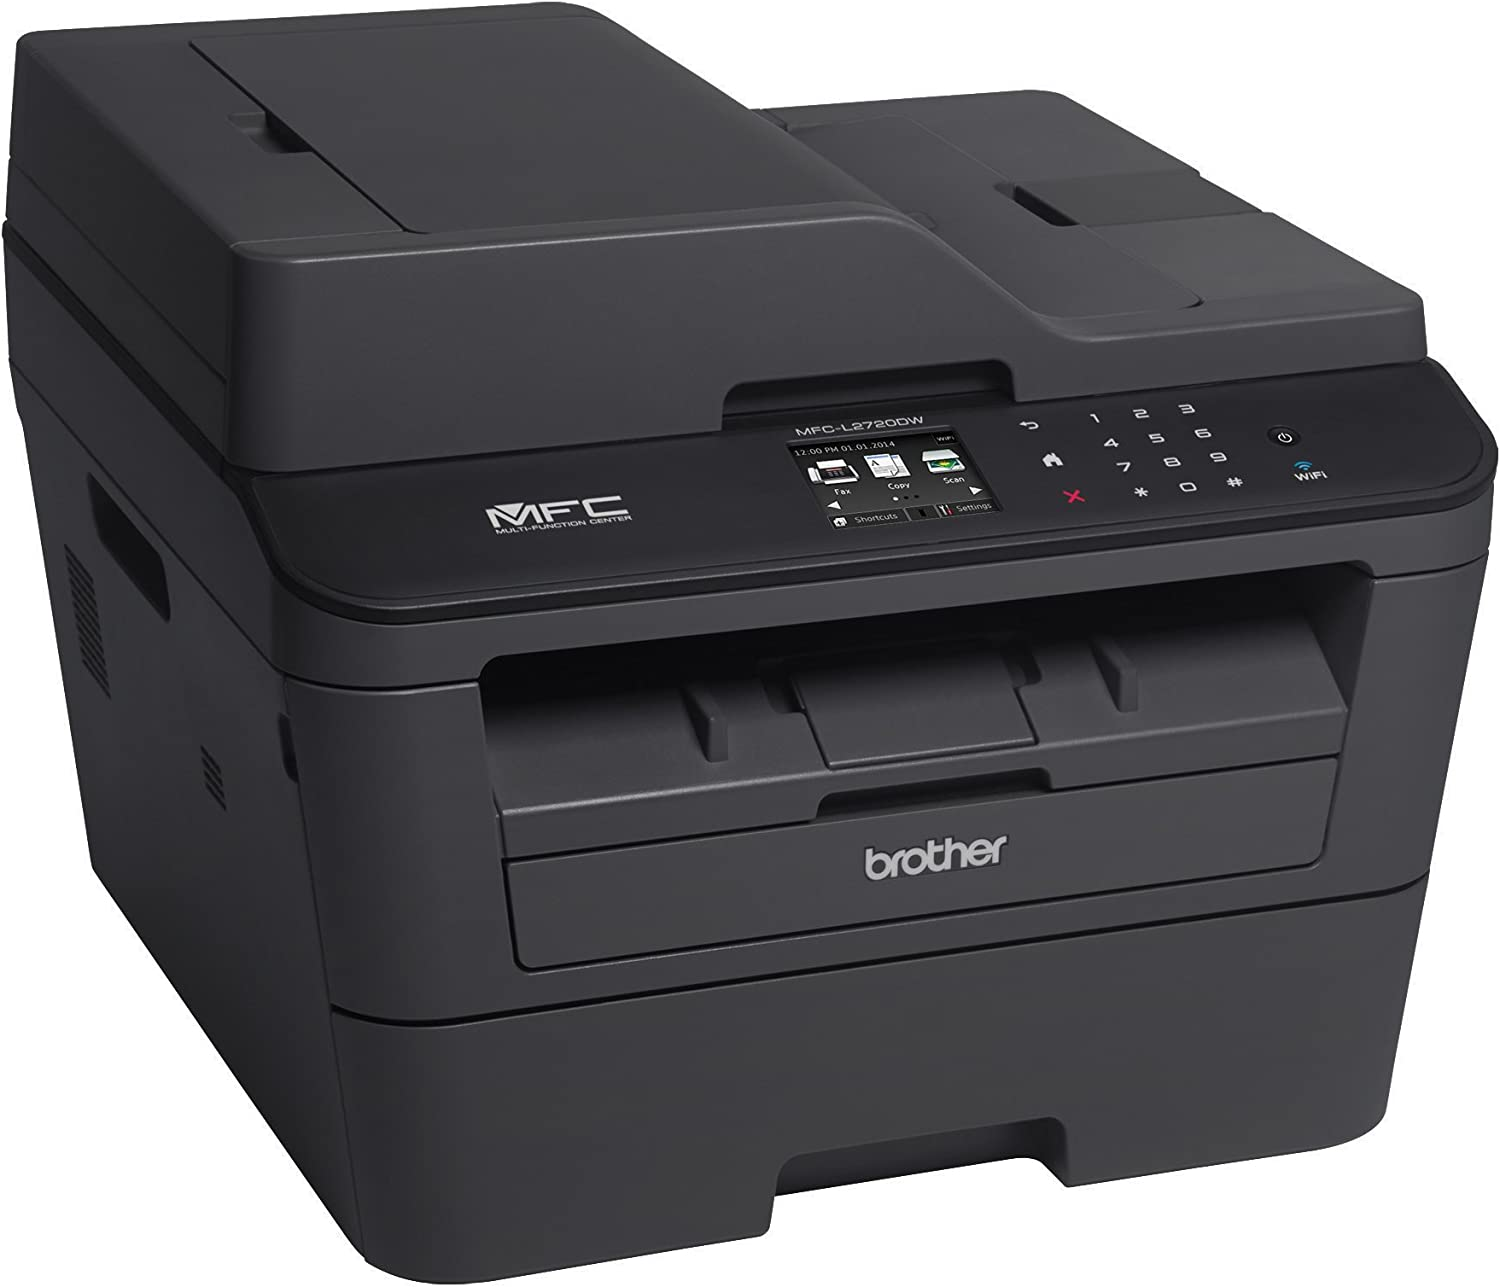 Brother Monochrome Laser Printer, Compact All-In One Printer, Multifunction Printer, MFCL2720DW, Wireless Networking and Duplex Printing, Amazon Dash ...